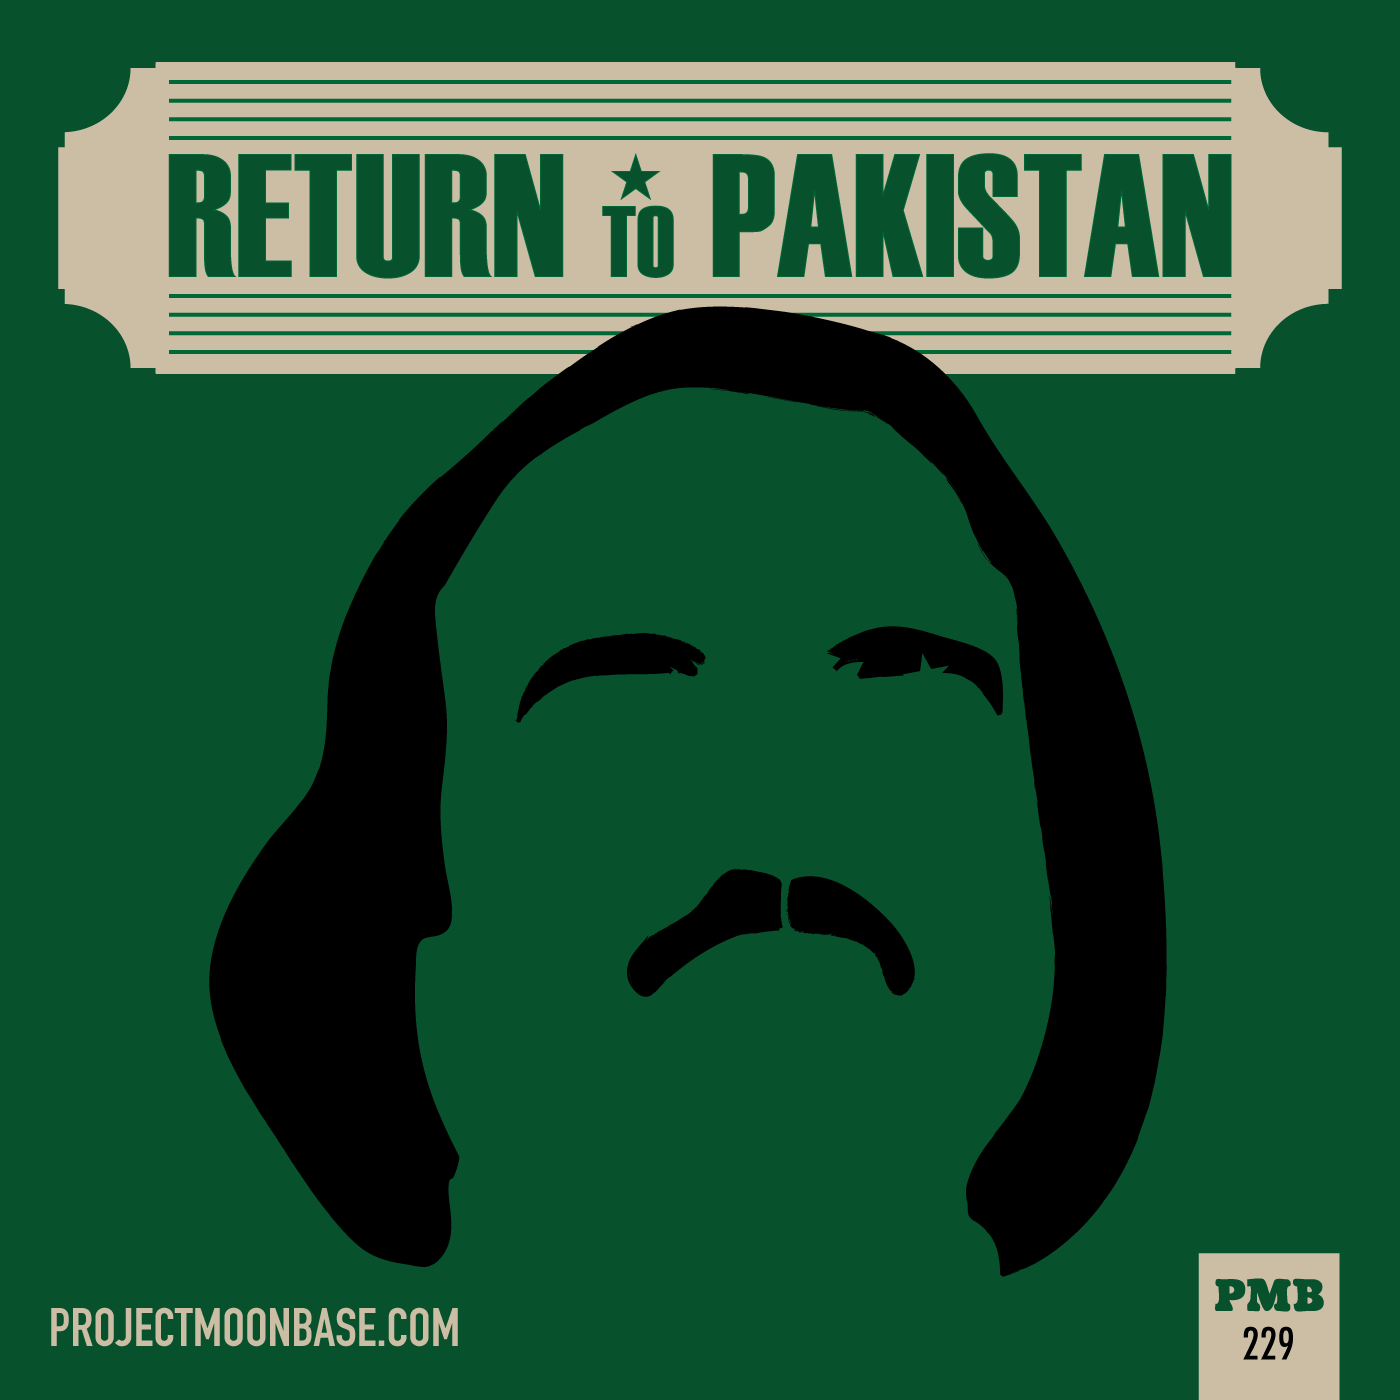 PMB229: Return to Pakistan